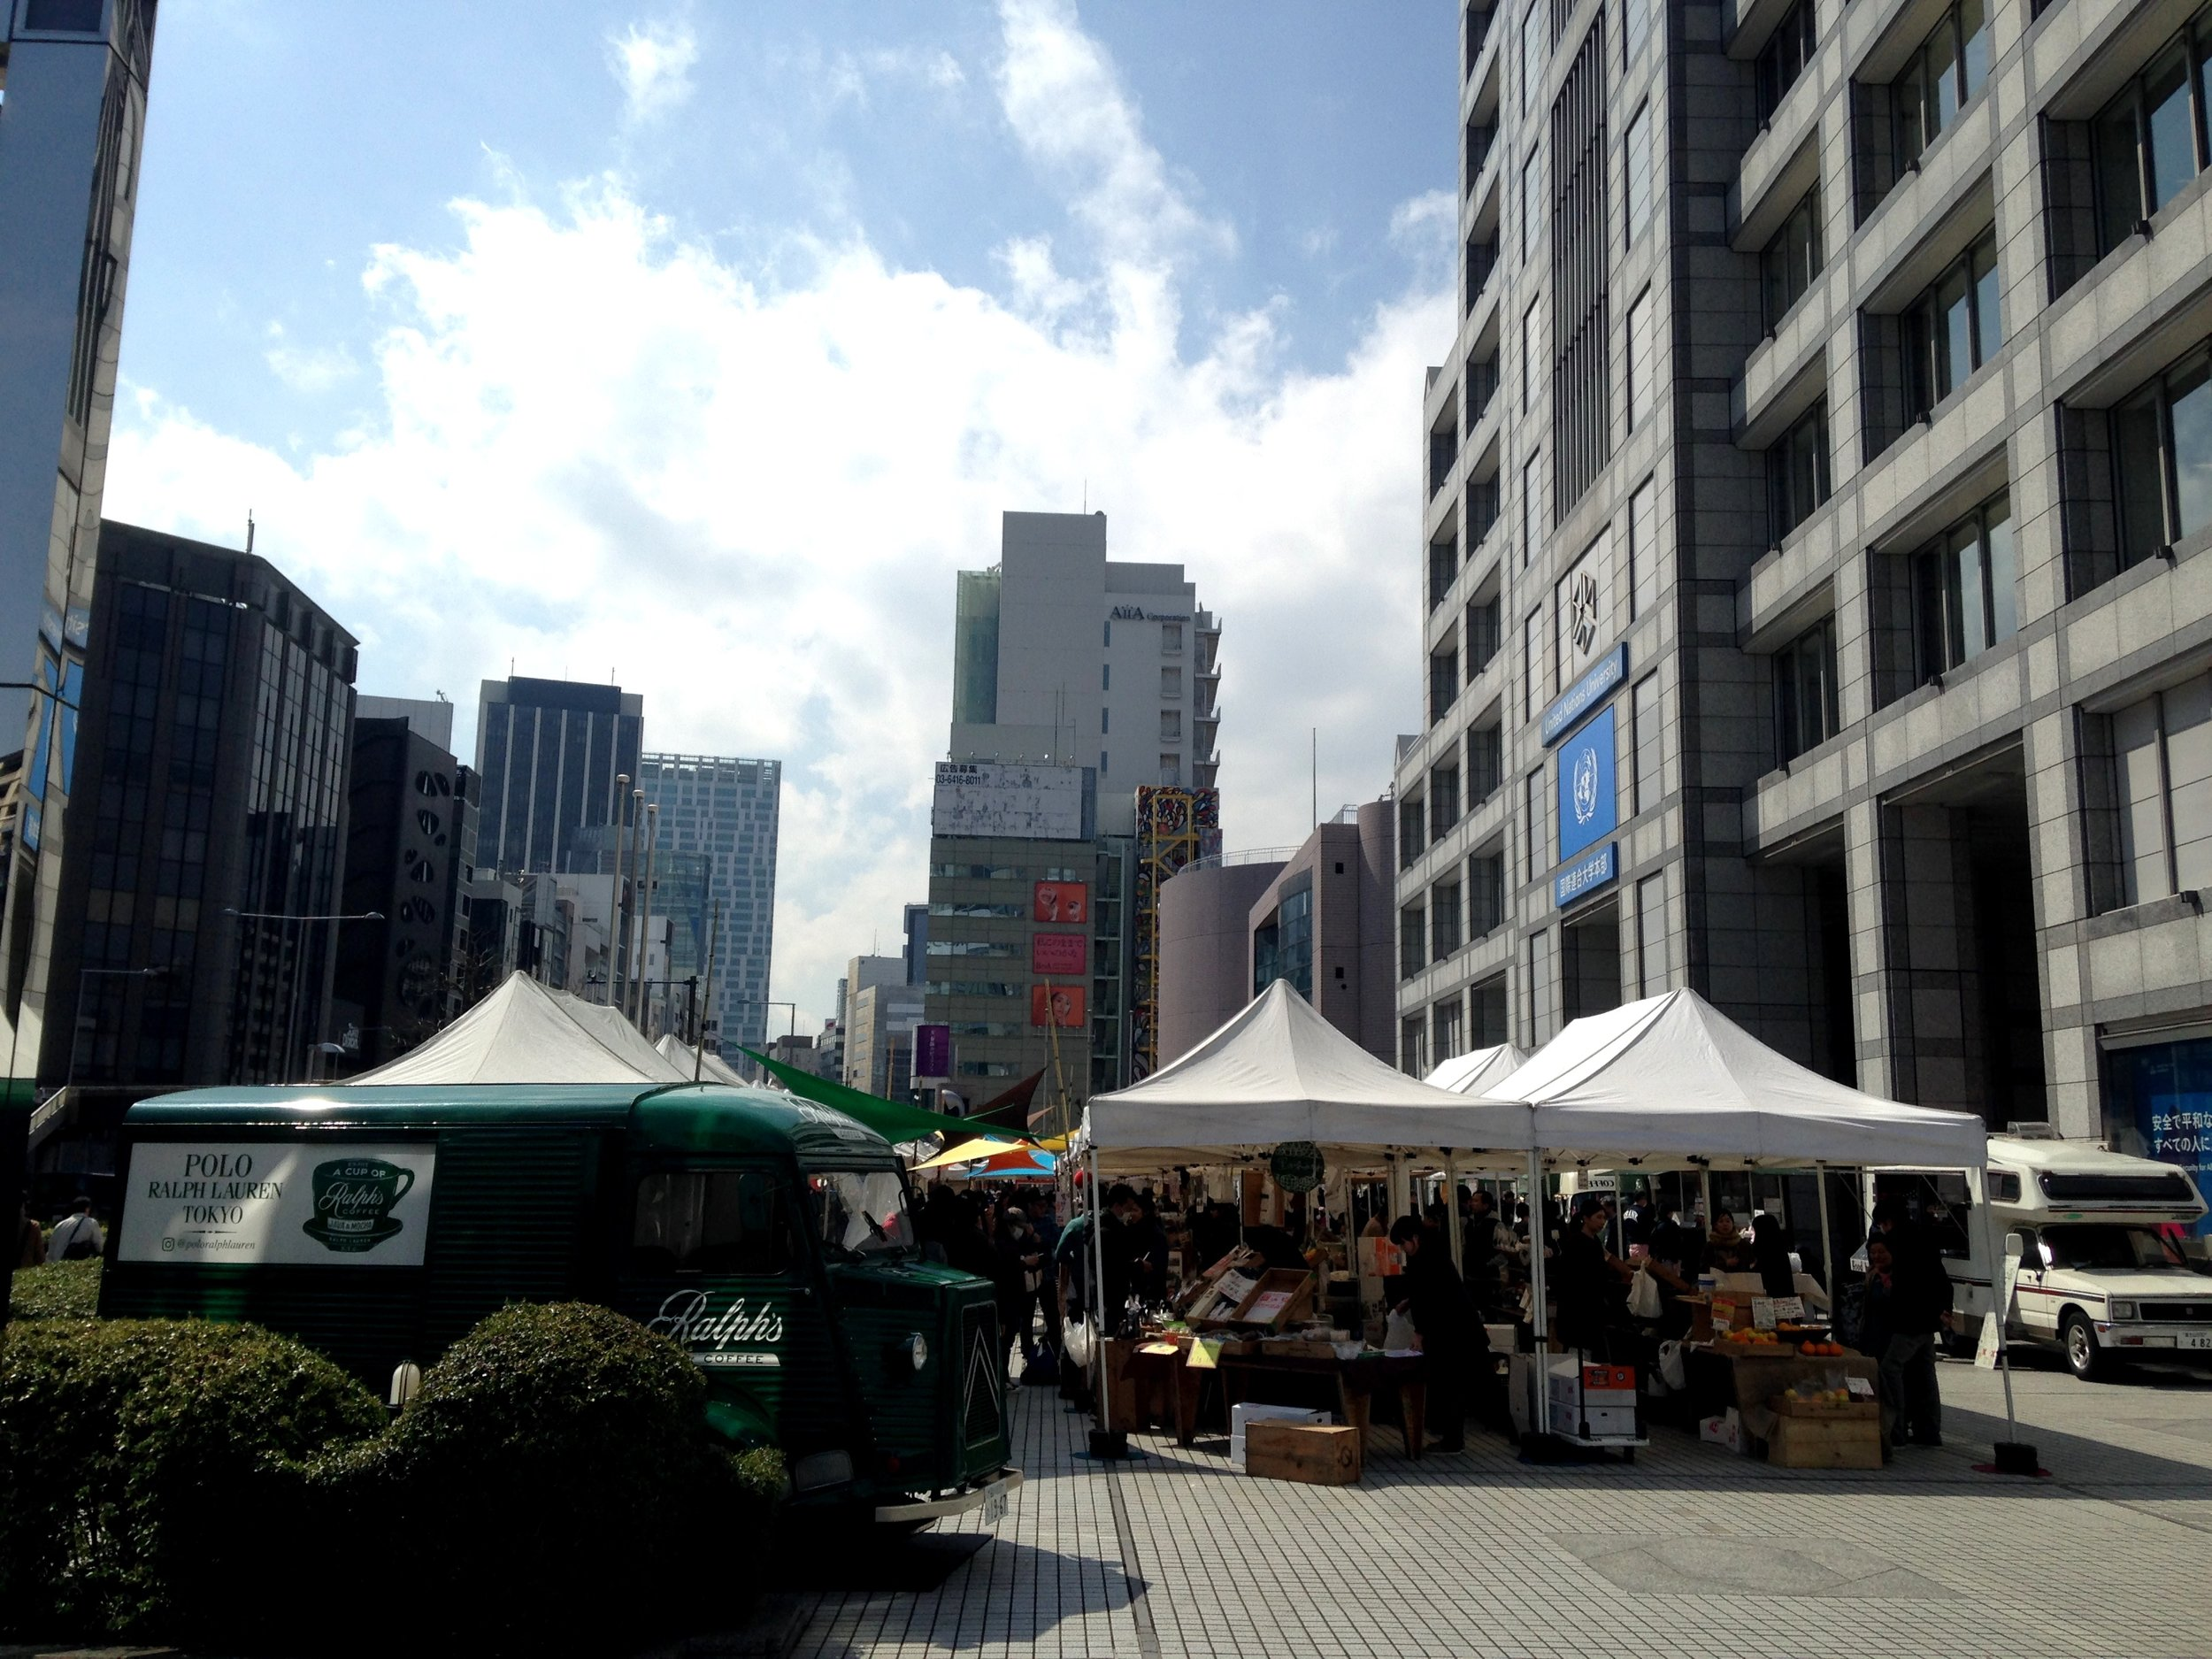 Kurosaki-san's UNU farmers market is such a great market! If I lived in Tokyo I would shop here regularly. We had a chance to walk around a bit before my talk and Jimbo's DJing. I got some really yummy citrus and shoyu.